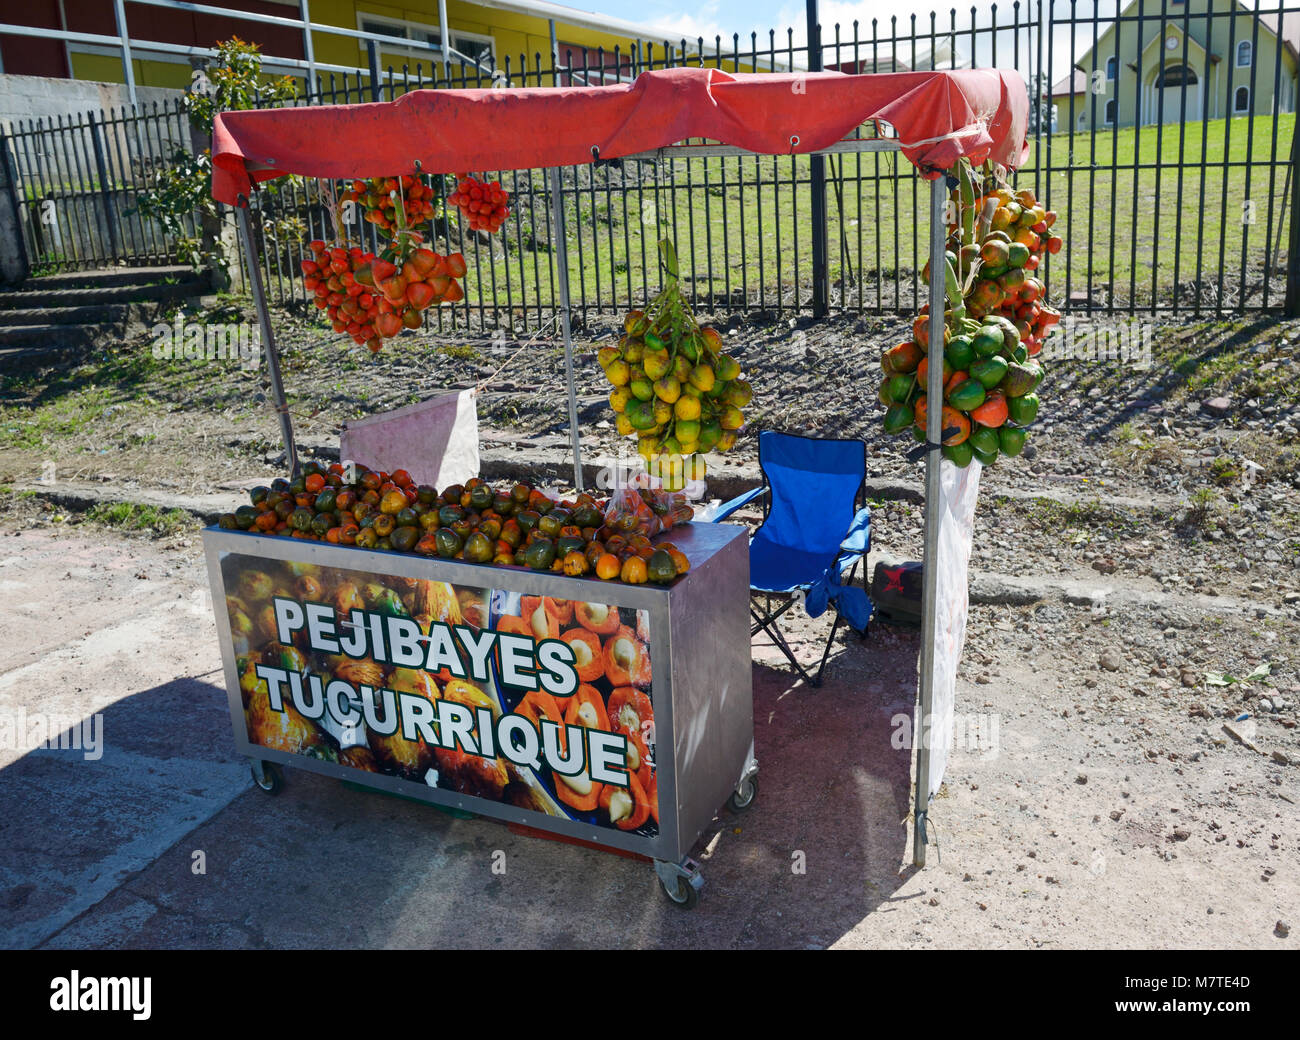 Fruit stand selling pejibayes, the fruit of Bactris dasipaes or the peach palm fruit. Costa Rica - Stock Image